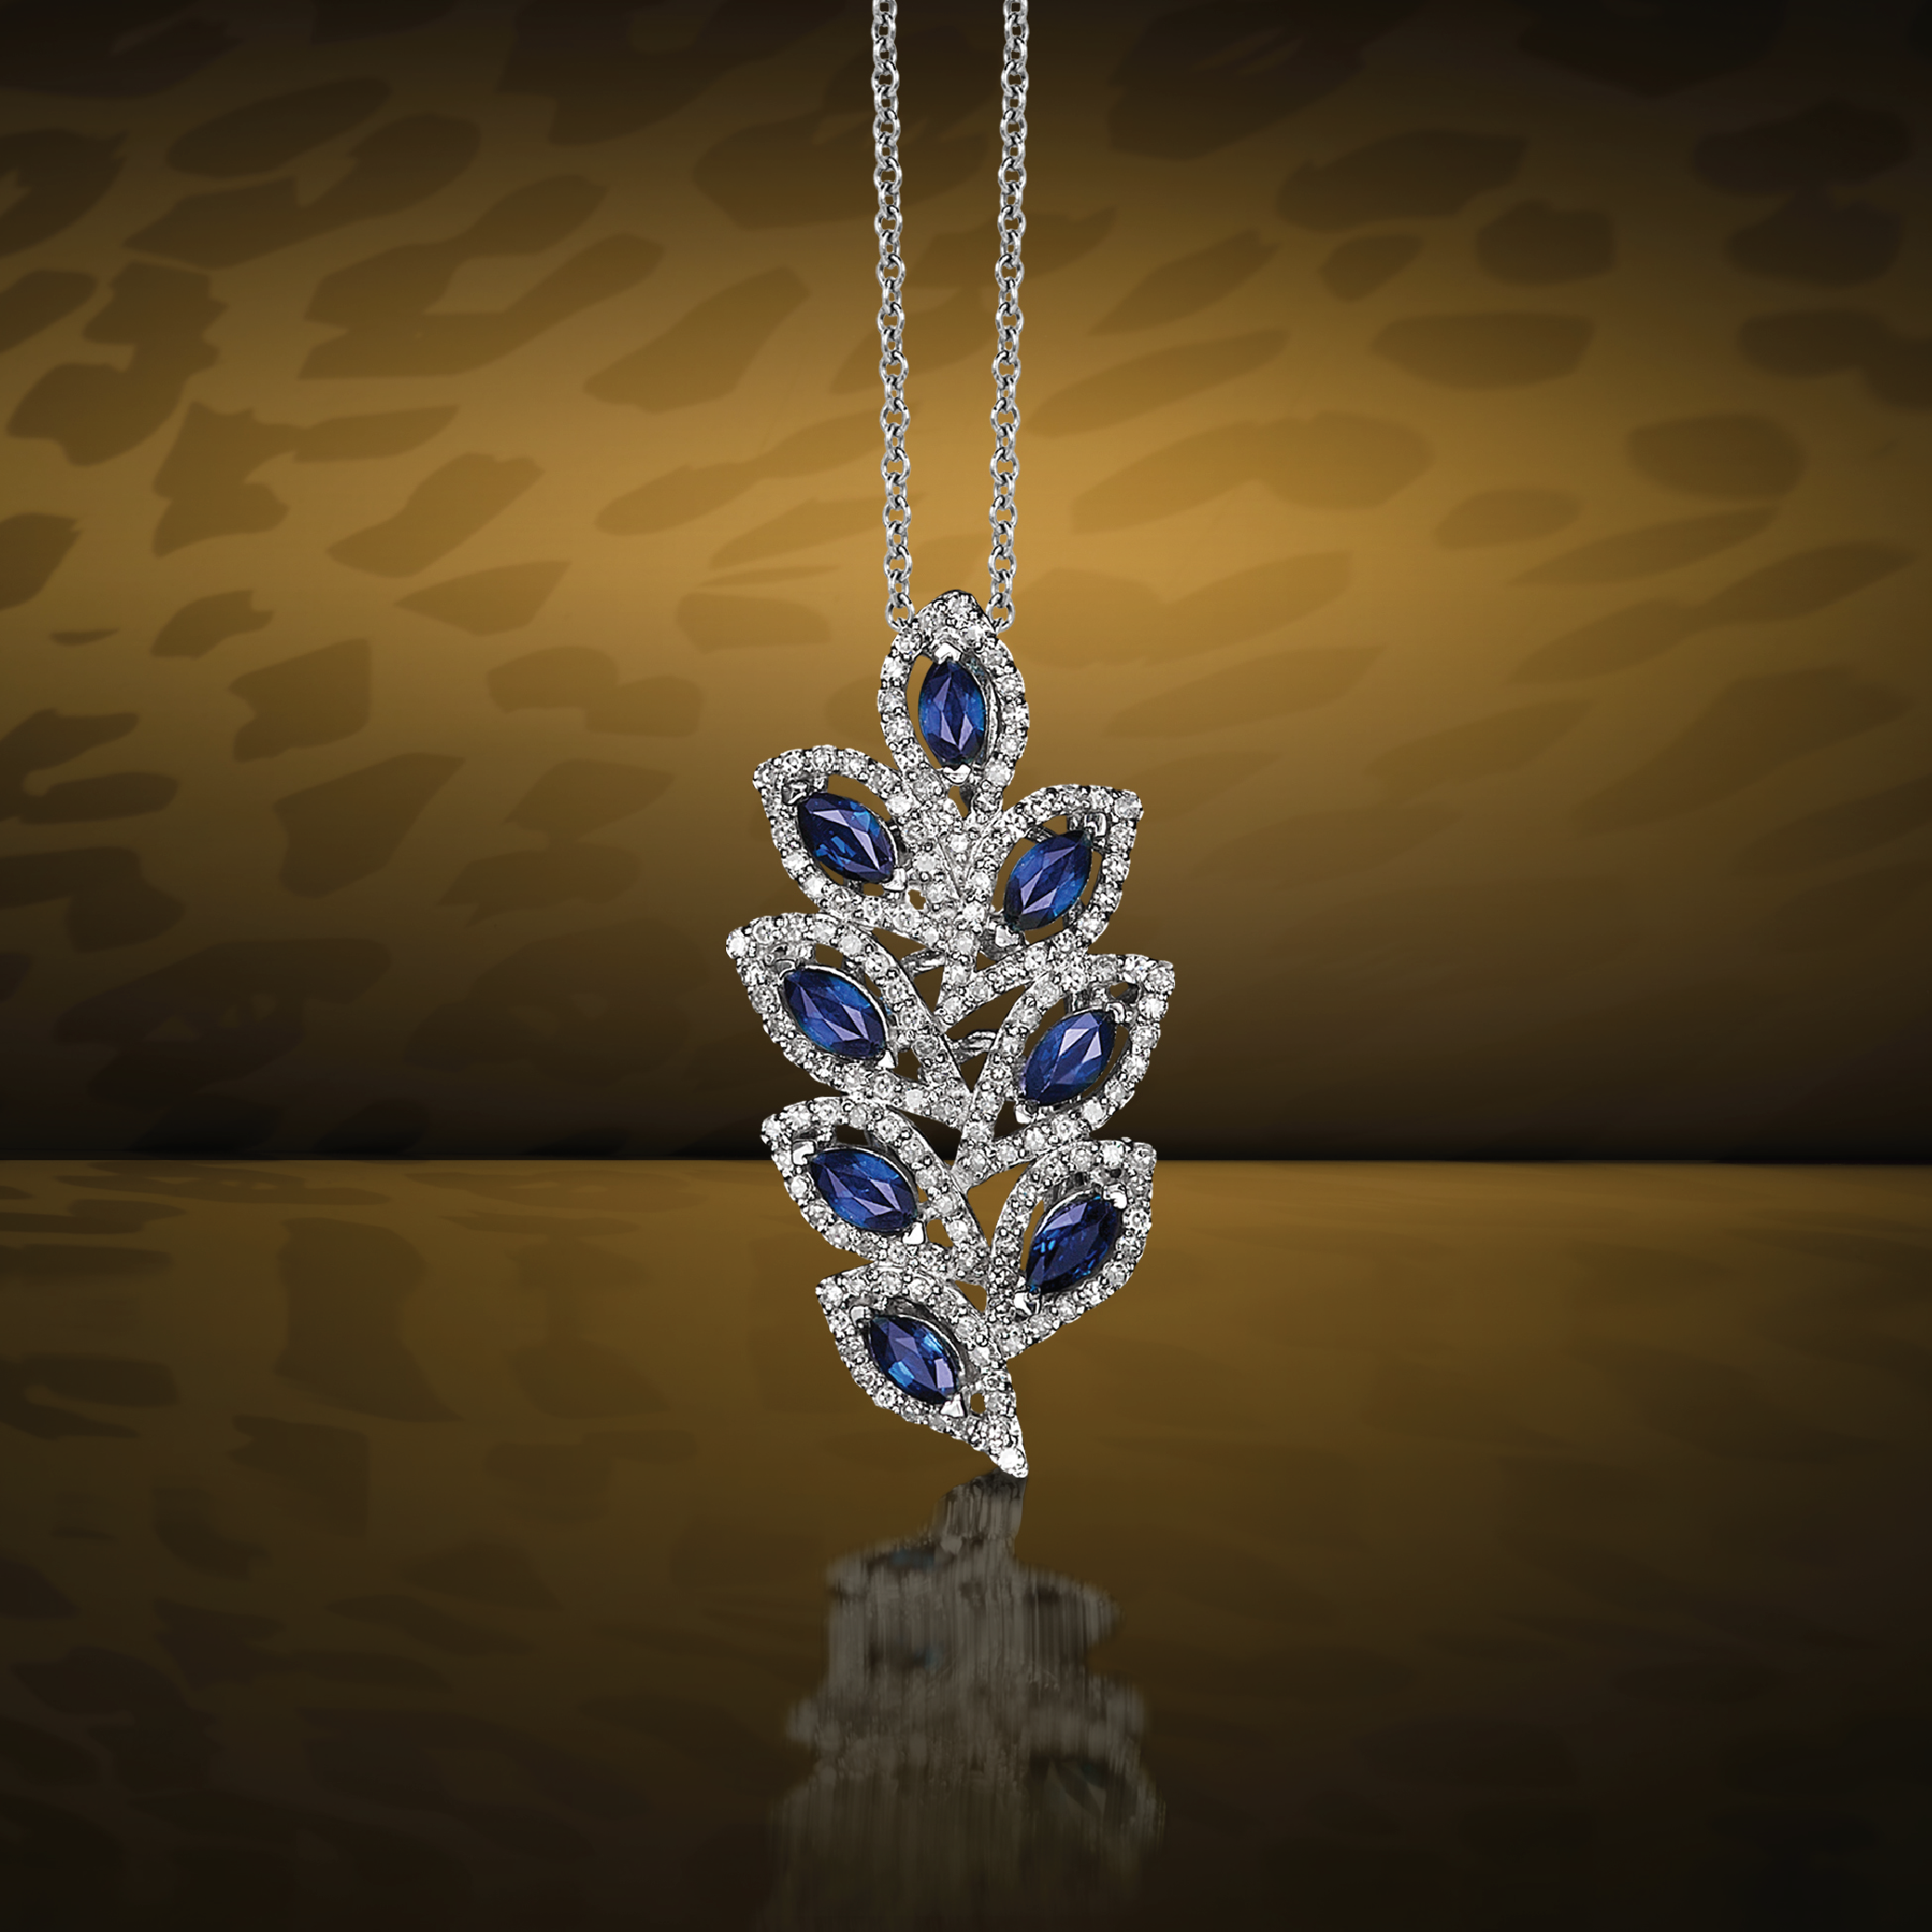 Fall-ing into color...are you?  Shop NEW Sapphire Styles> http://www.effyjewelry.com/specials/birthstone/sapphire.html?utm_content=buffer2d16d&utm_medium=social&utm_source=pinterest.com&utm_campaign=buffer